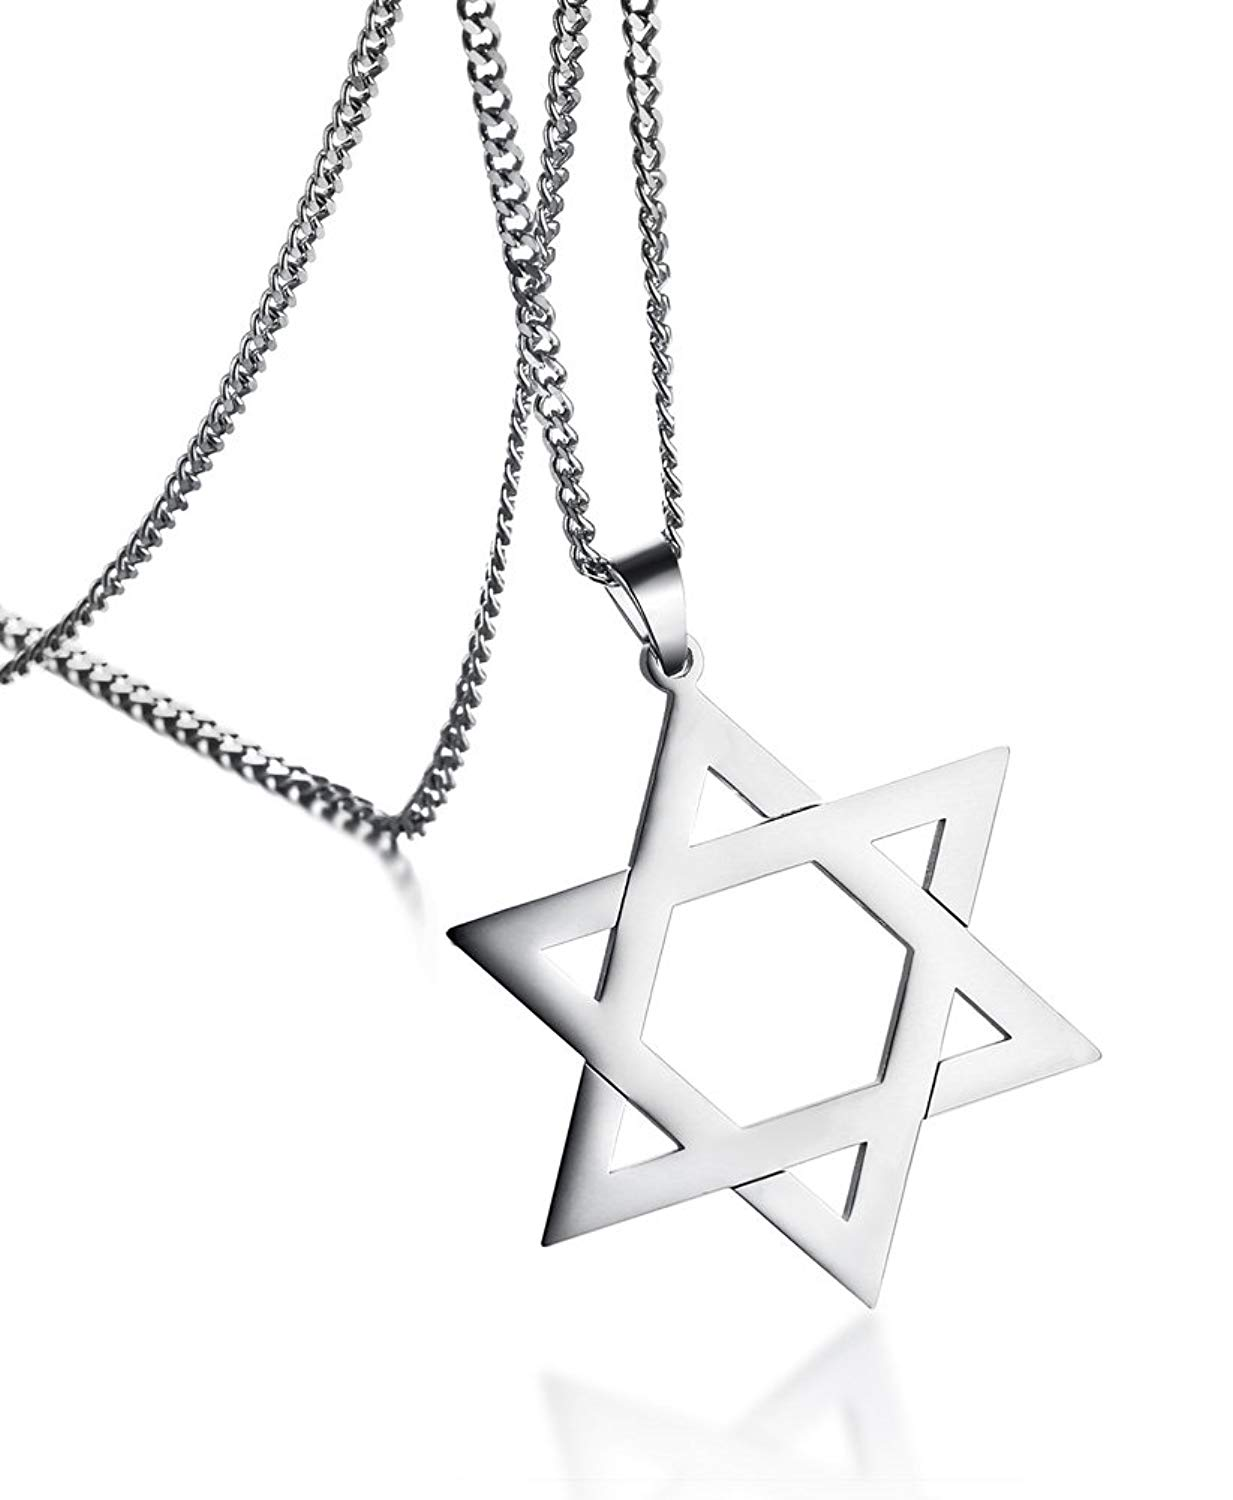 Cheap Jewish Religious Items Find Jewish Religious Items Deals On